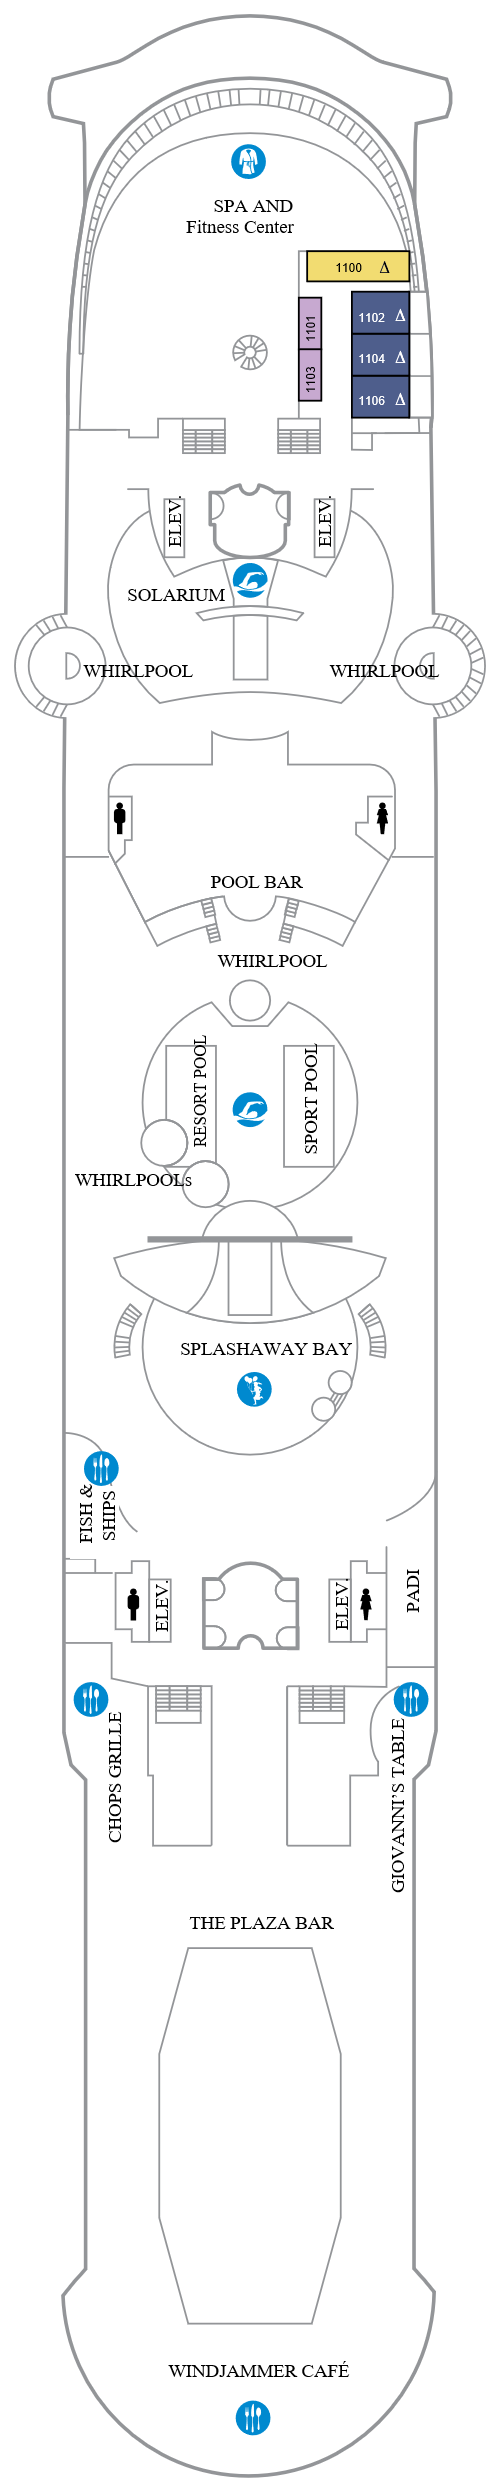 Independence Of The Seas Deck 11 layout